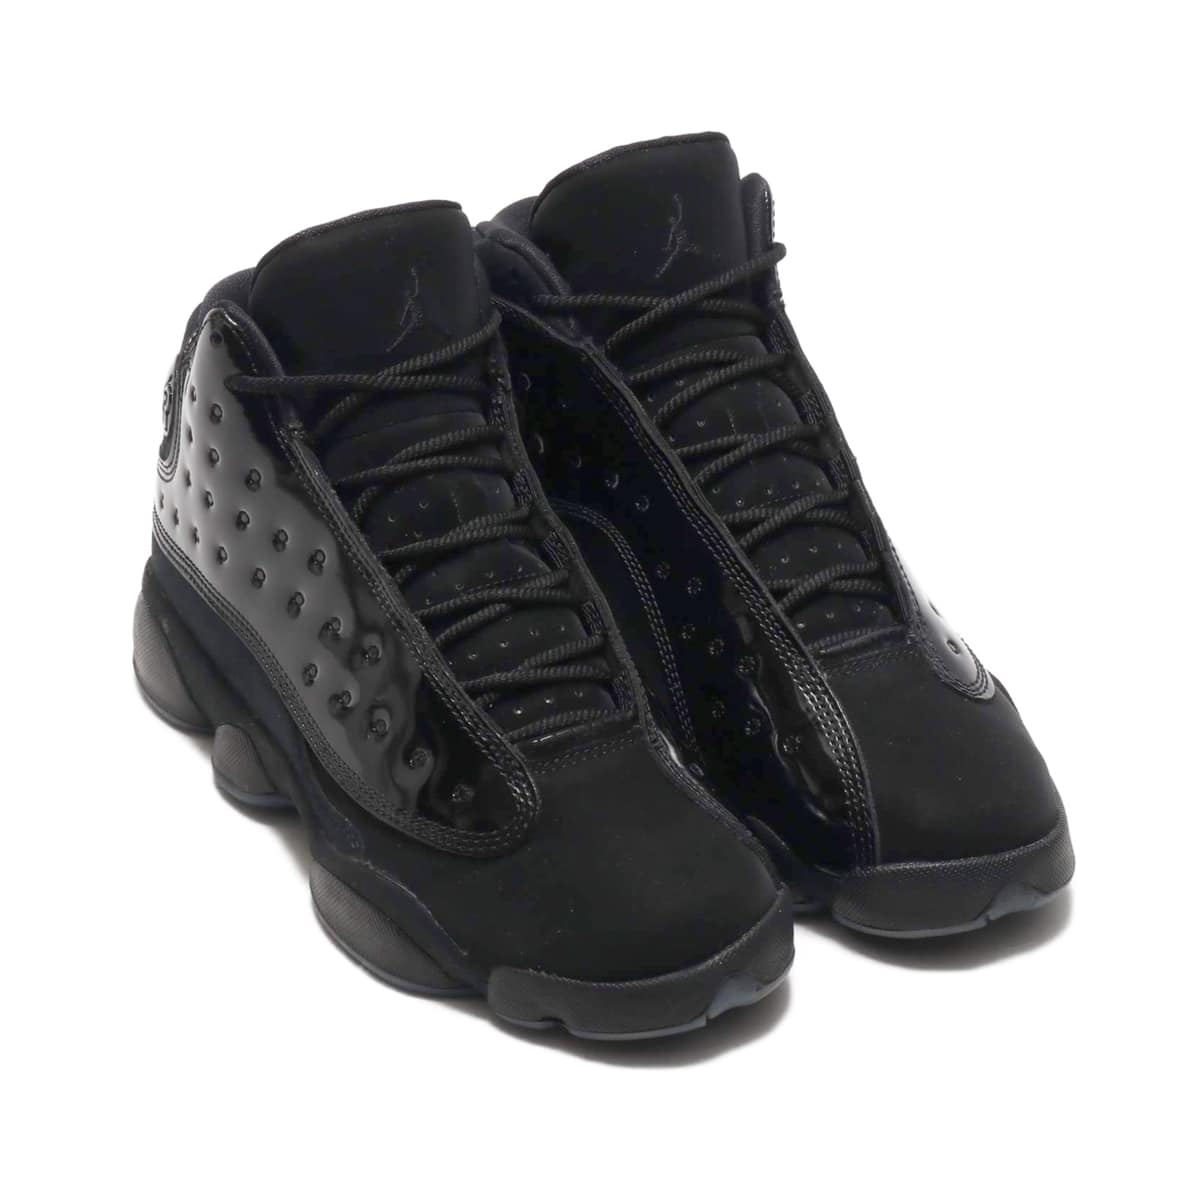 NIKE AIR JORDAN 13 RETRO ナイキ エア ジョーダン 13 レトロ GS)BLACK/BLACK 19SU-S_photo_large